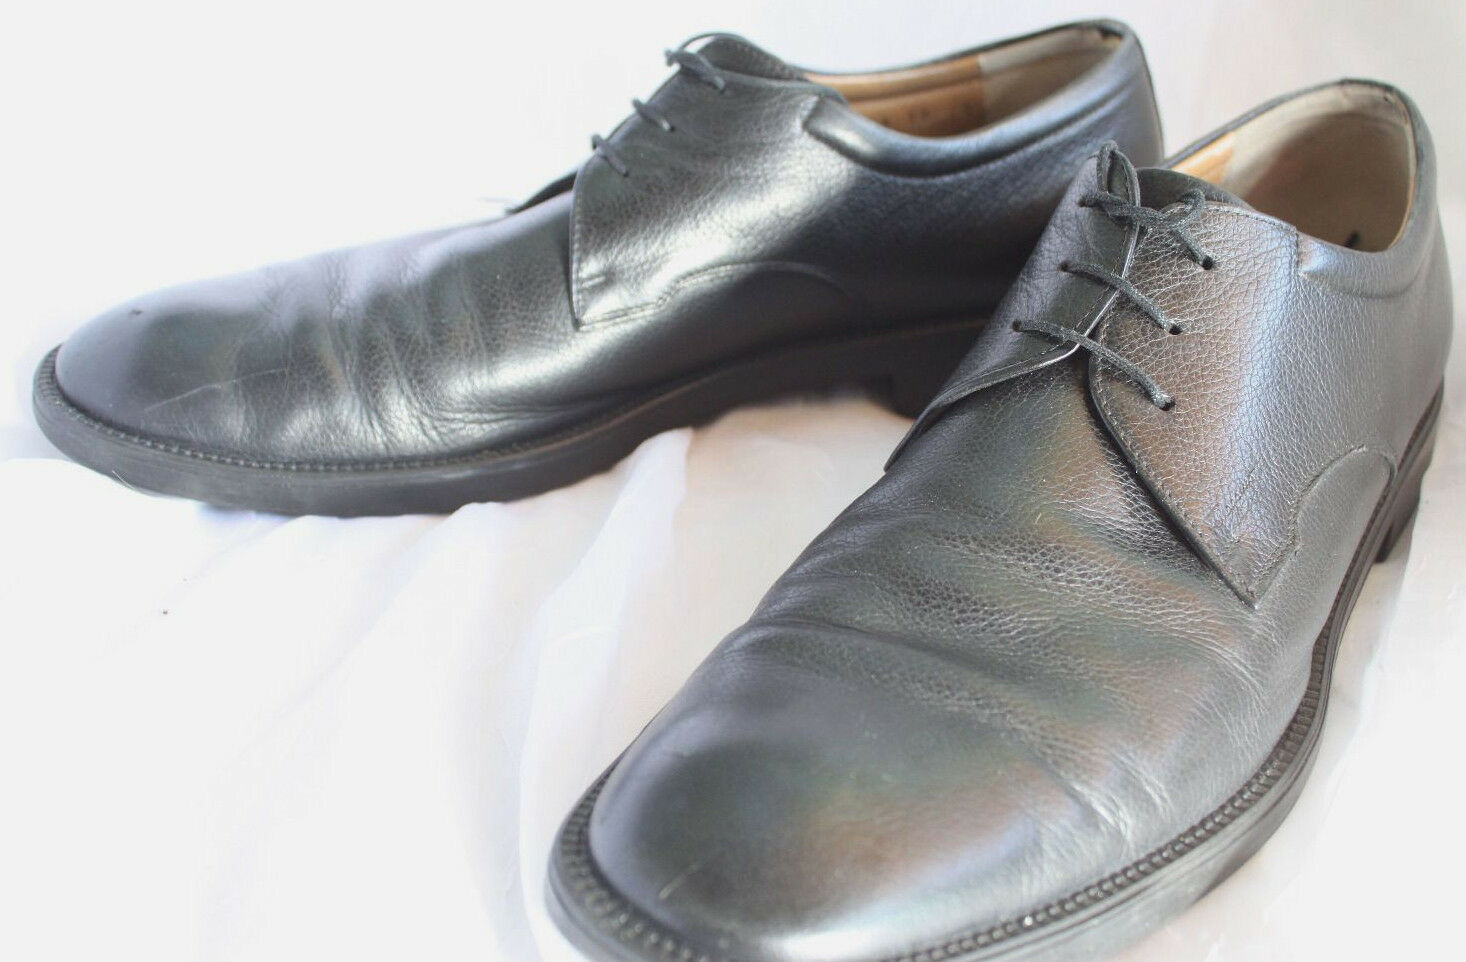 Salvatore Ferragamo Mens Black Leather Oxford new shoes shoes Size 11B Made in